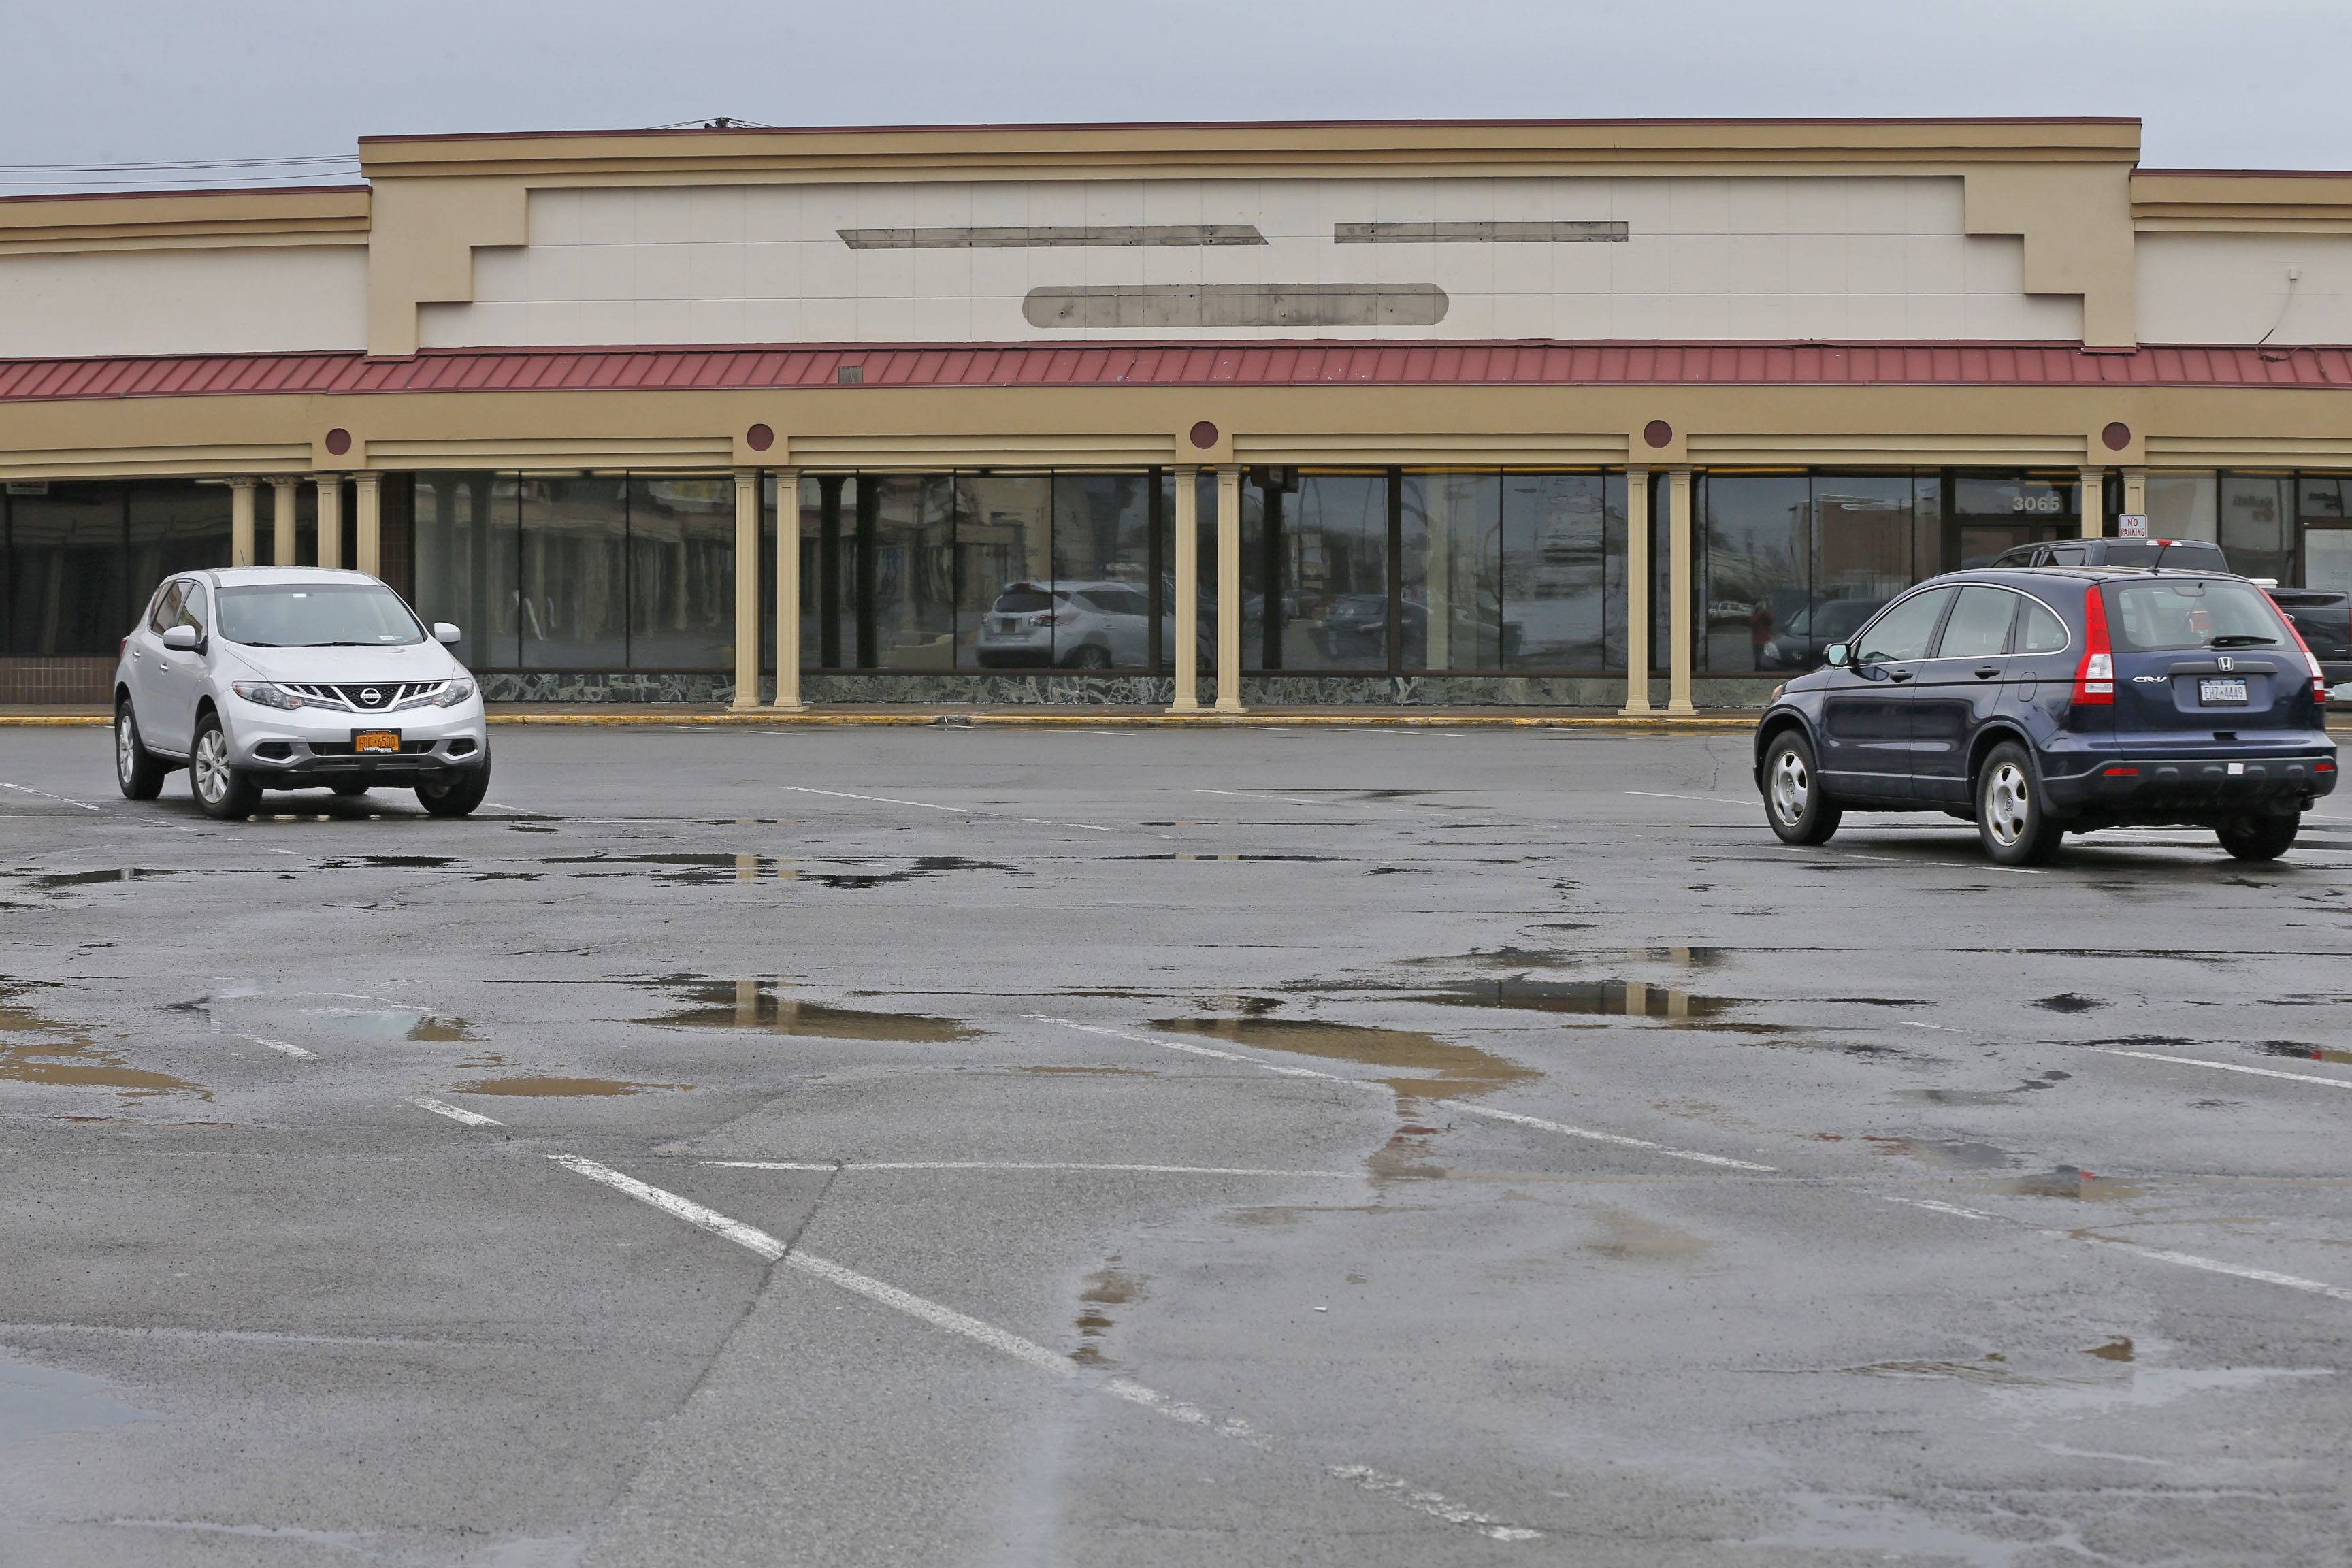 The owner of the Northtown Plaza has signed a lease for an L.L. Bean store, according to a document filed with the Erie County Clerk's Office. (Robert Kirkham/Buffalo News)